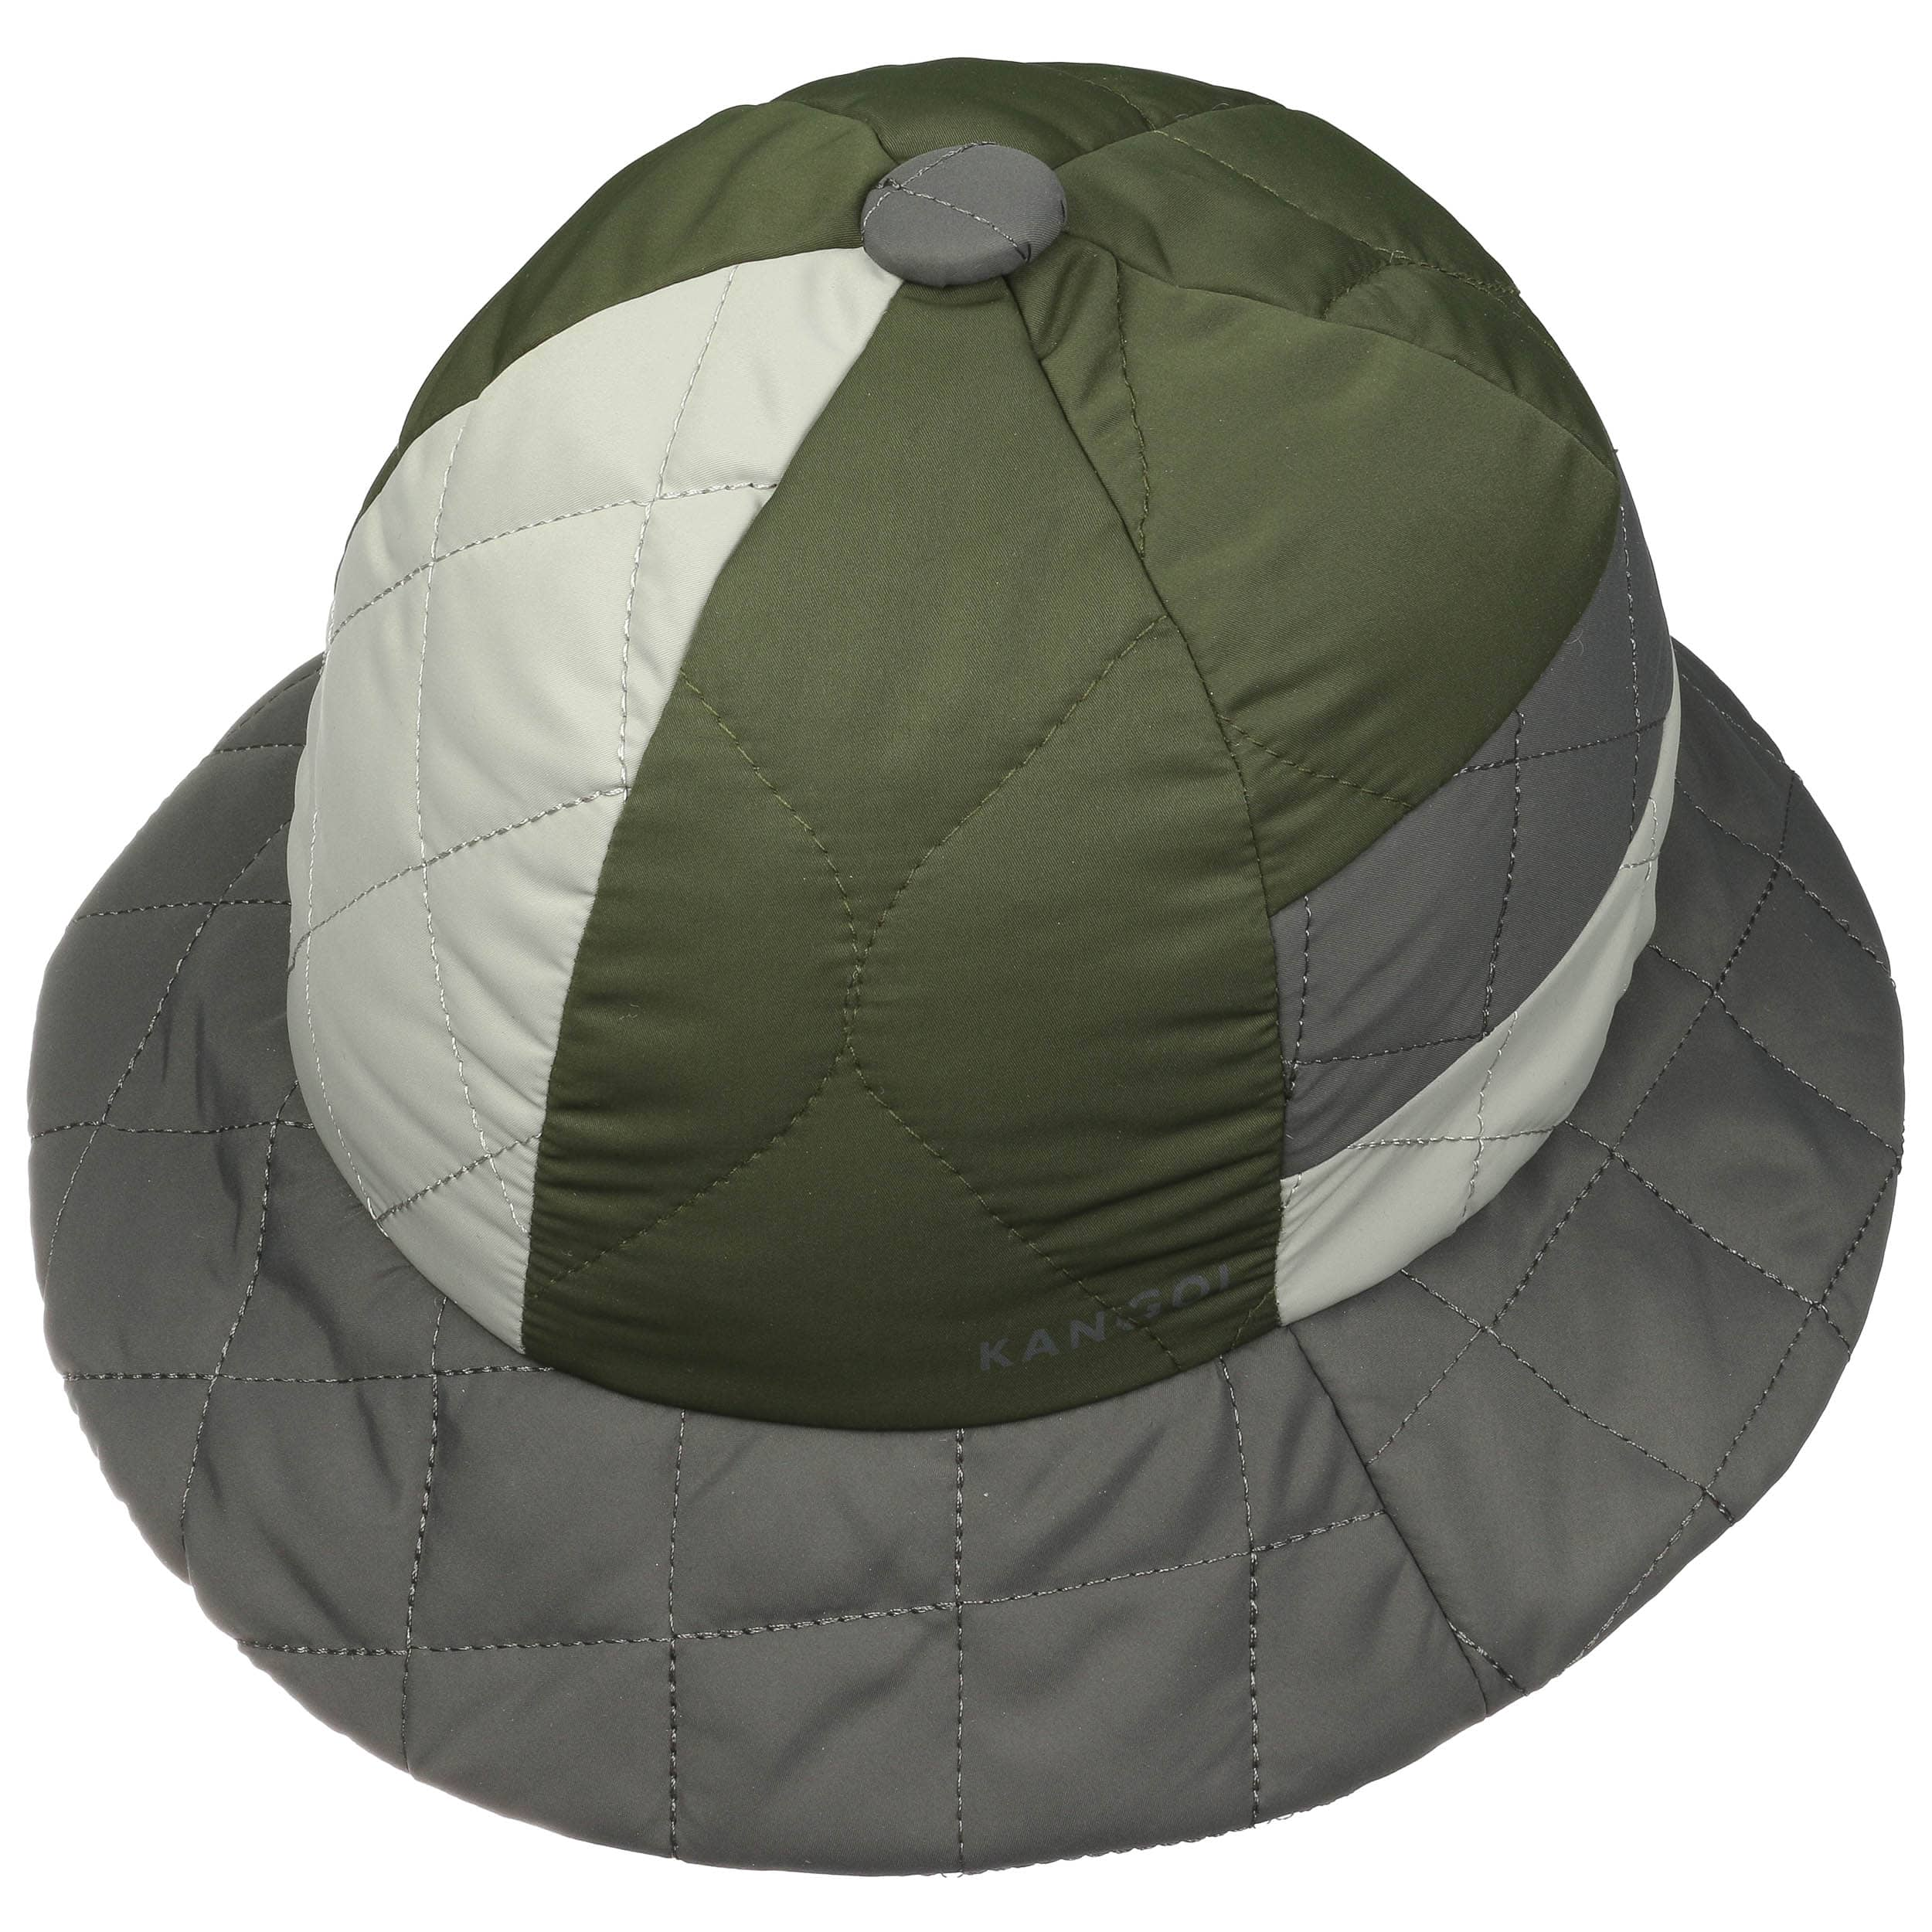 Cappello Quilted Mix Casual by Kangol - grigio-oliva 1 ... 6e516ec6fab7